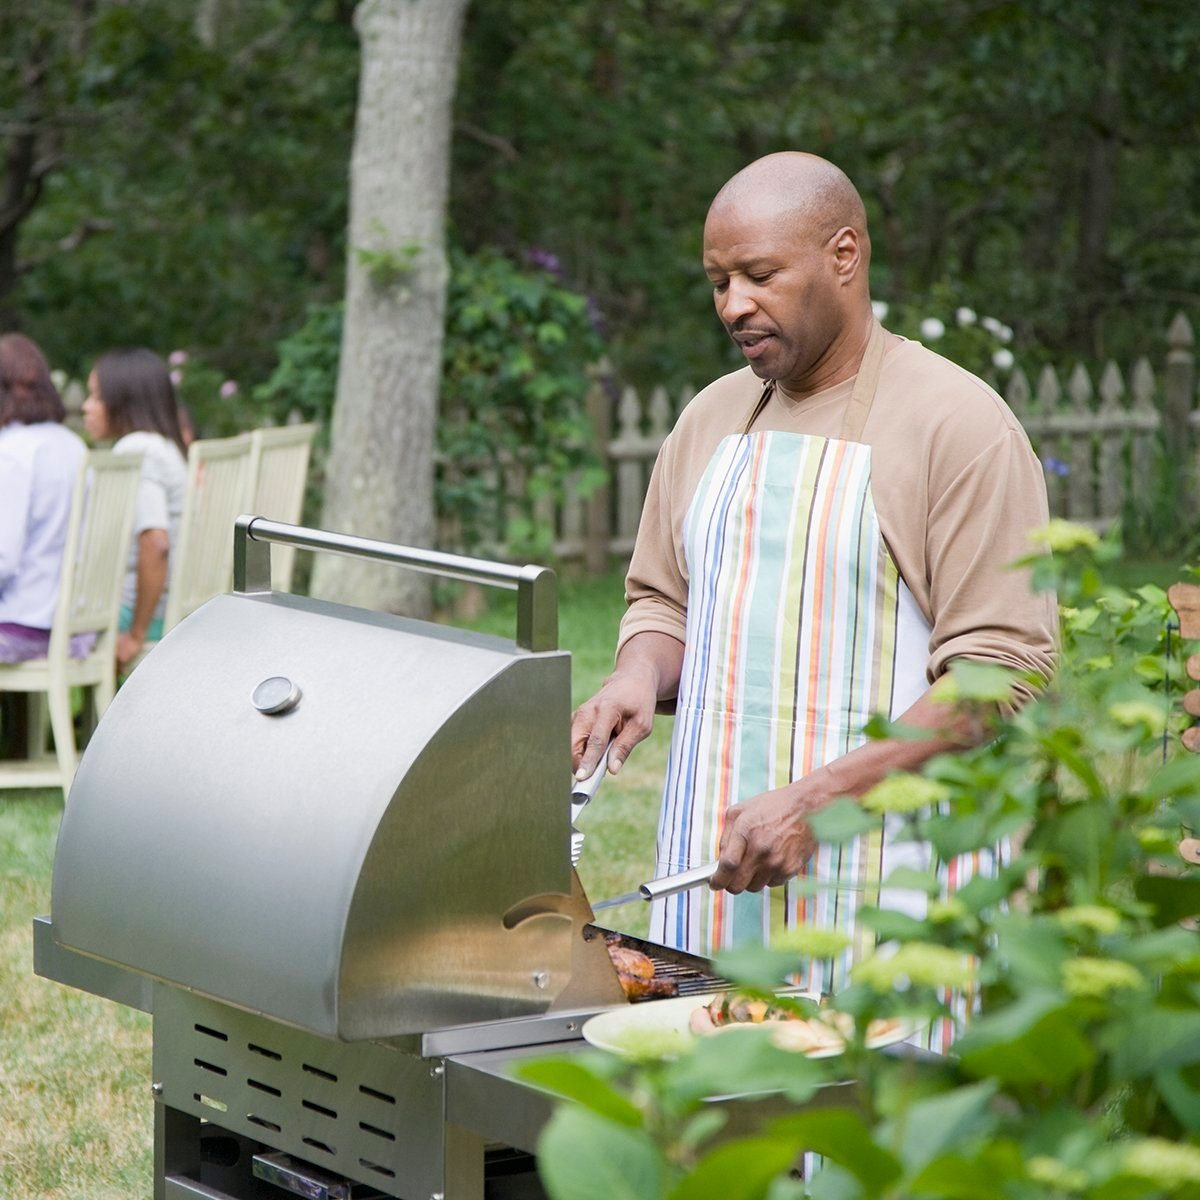 Mature man preparing food on a barbecue grill